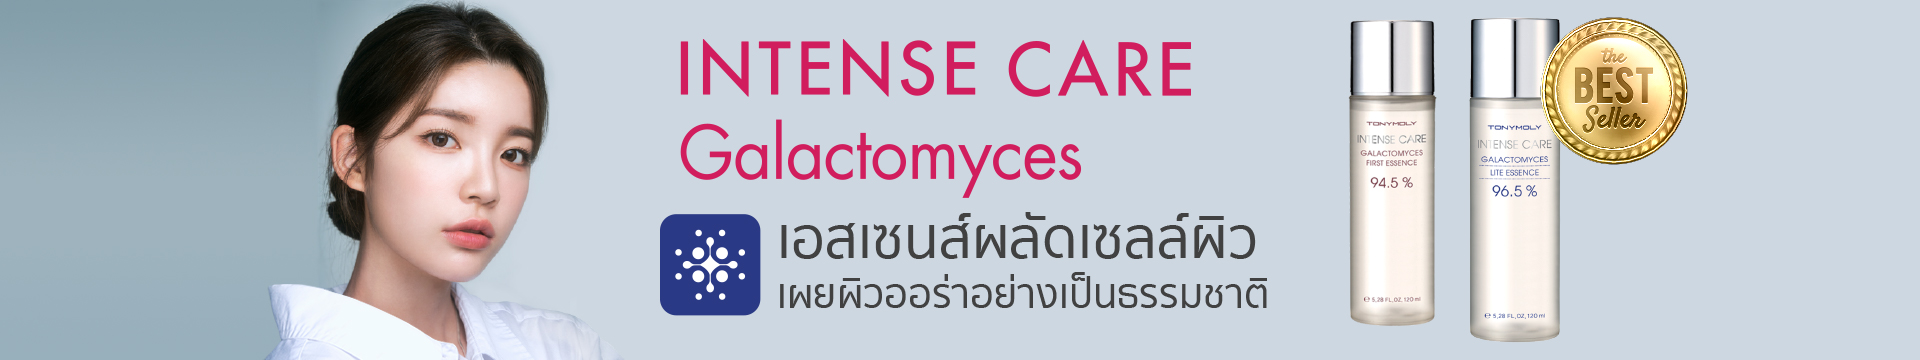 https://www.konvy.com/list/?title=Tonymoly+Intense+Care+Galactomyces